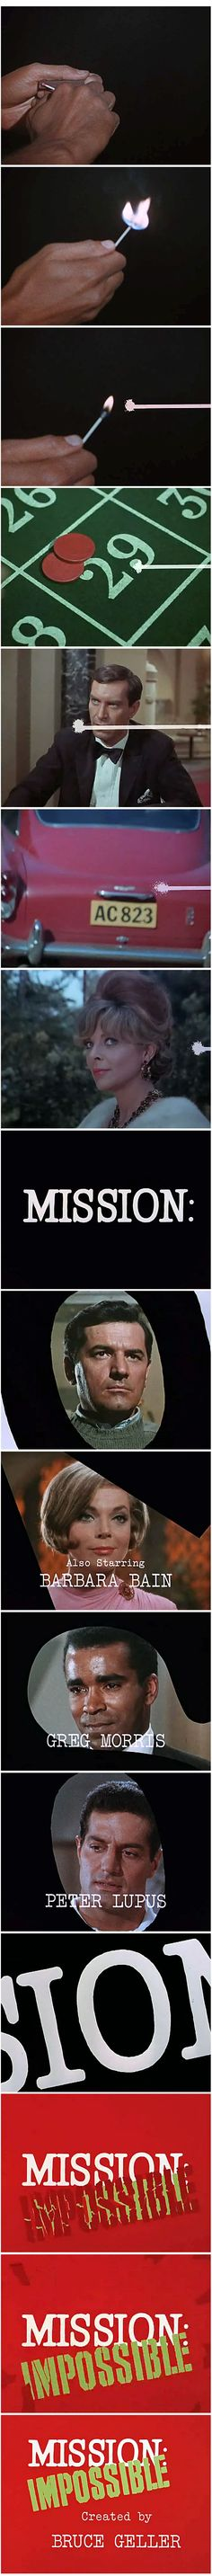 Mission Impossible - Bruce Geller, 1966-73